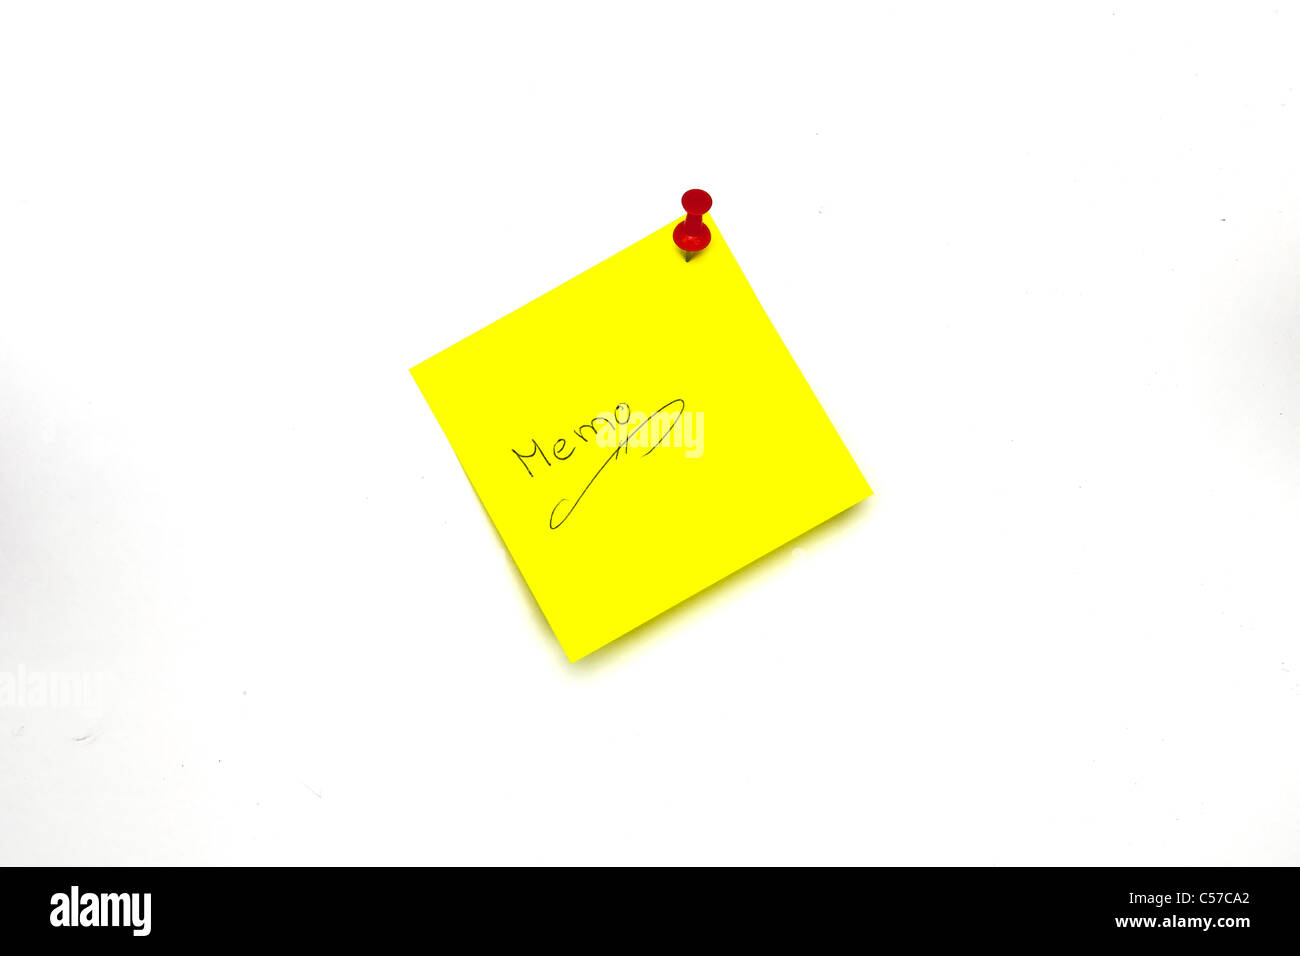 a yellow notepad with a red pin needle - Stock Image